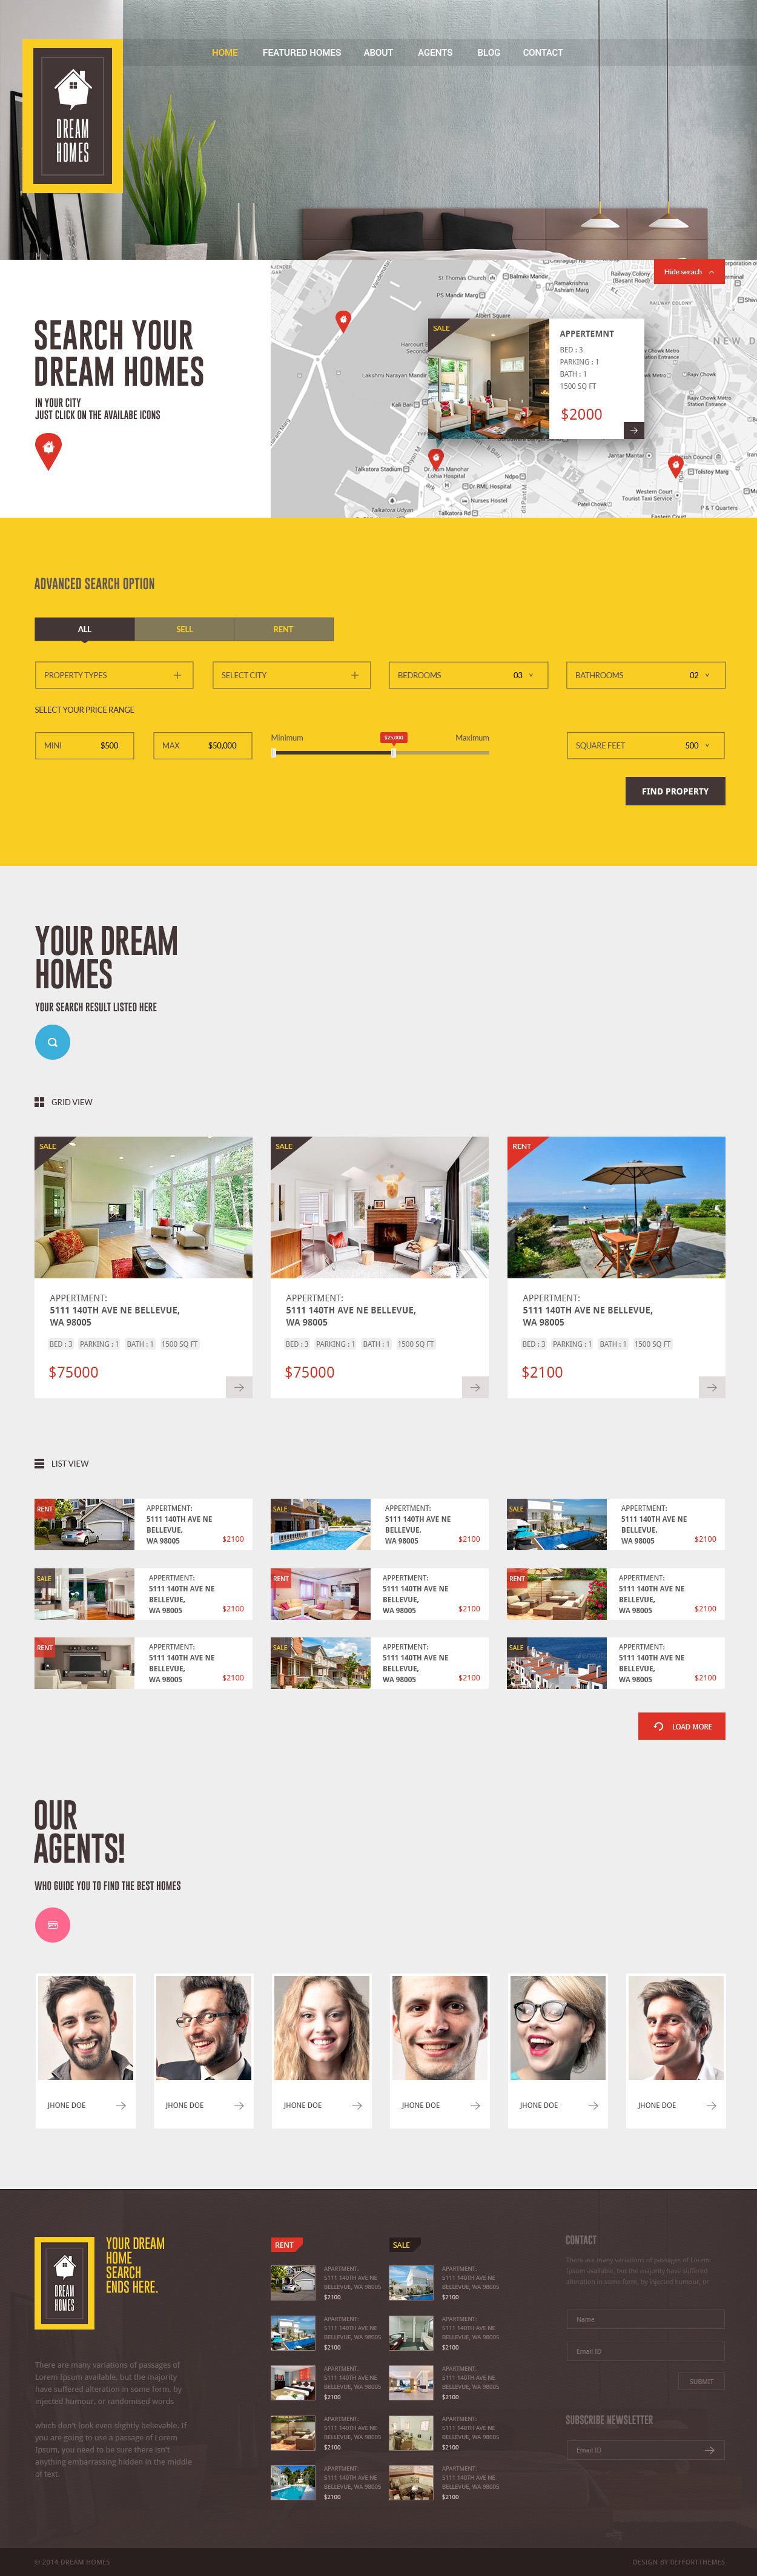 Dream Home An Awesome Idx Psd Theme By 0effortthemes